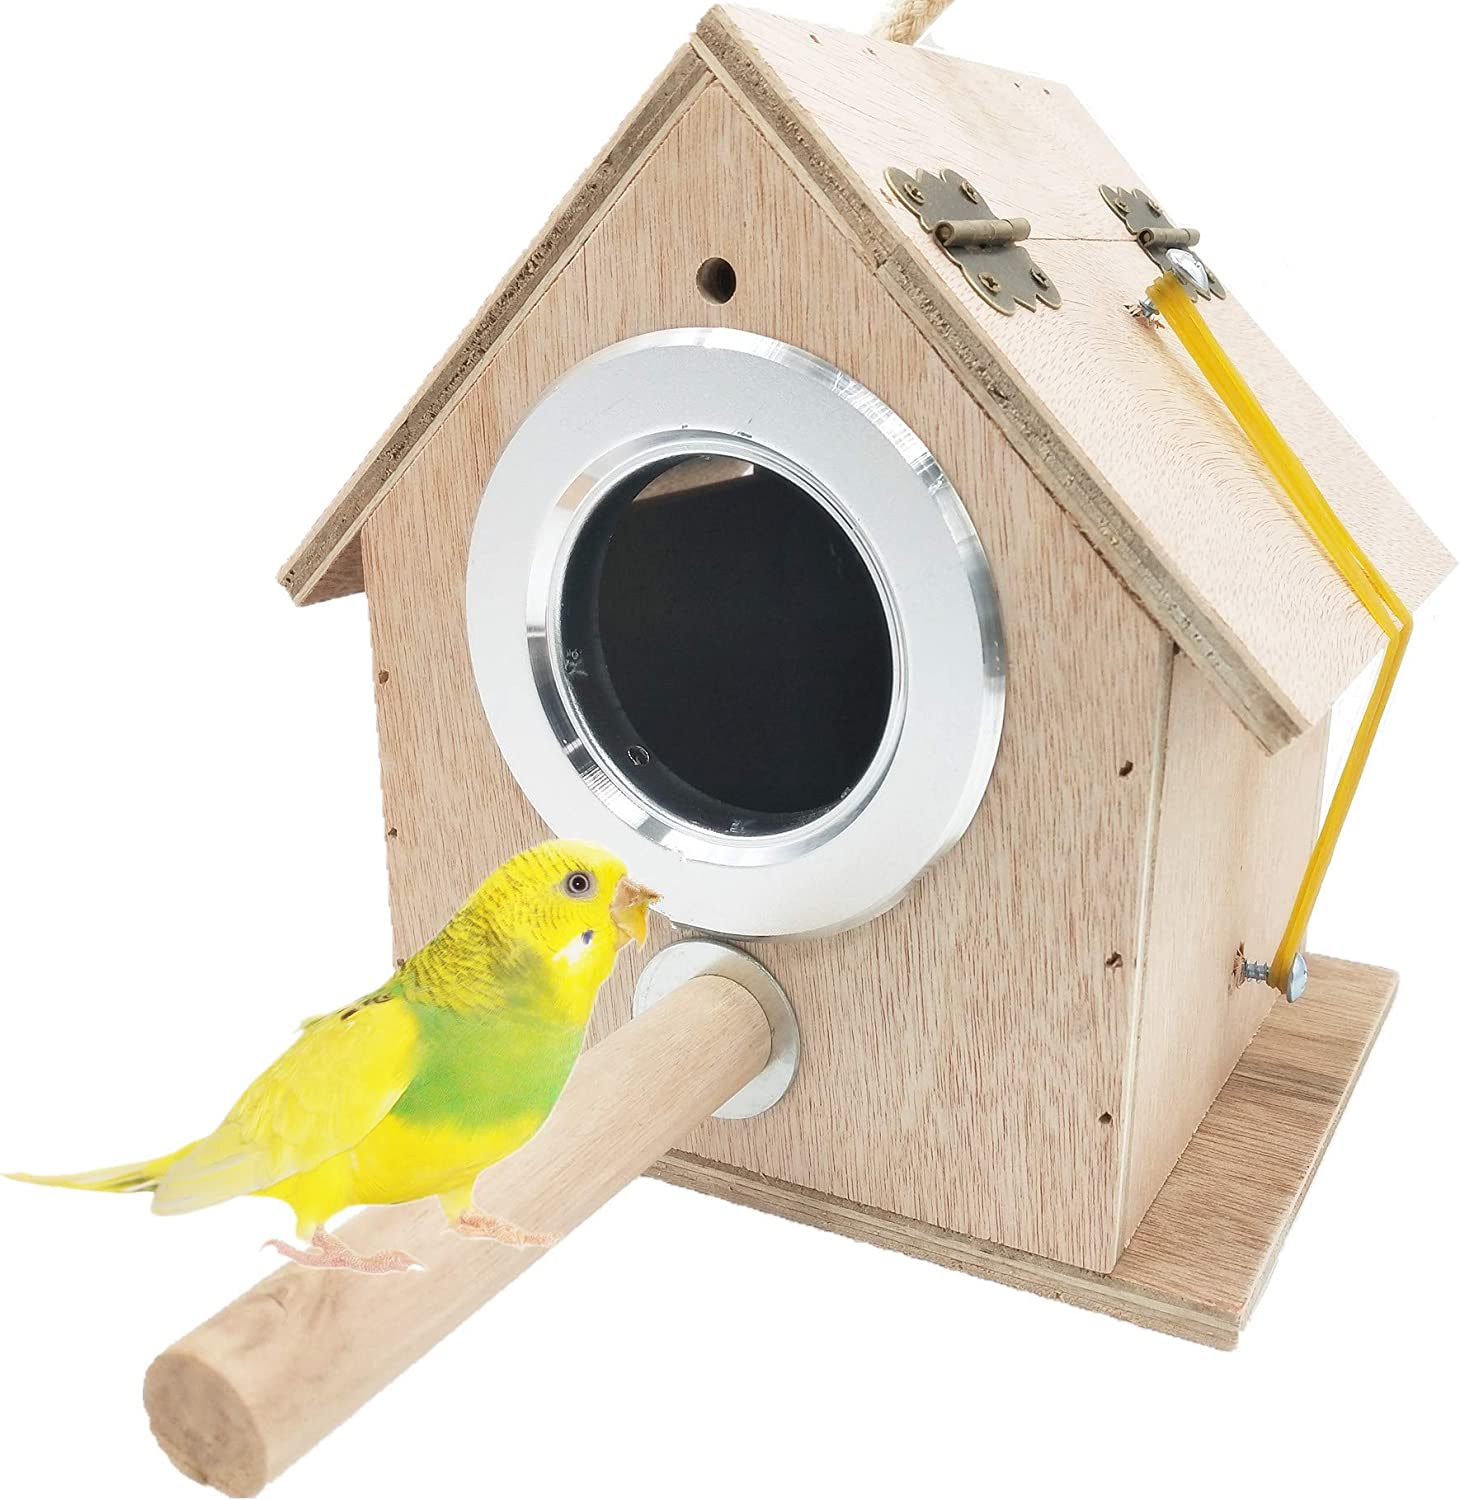 alfyng Parakeet Nest Box Bird Breeding N Wood Parrot low-pricing Max 84% OFF House